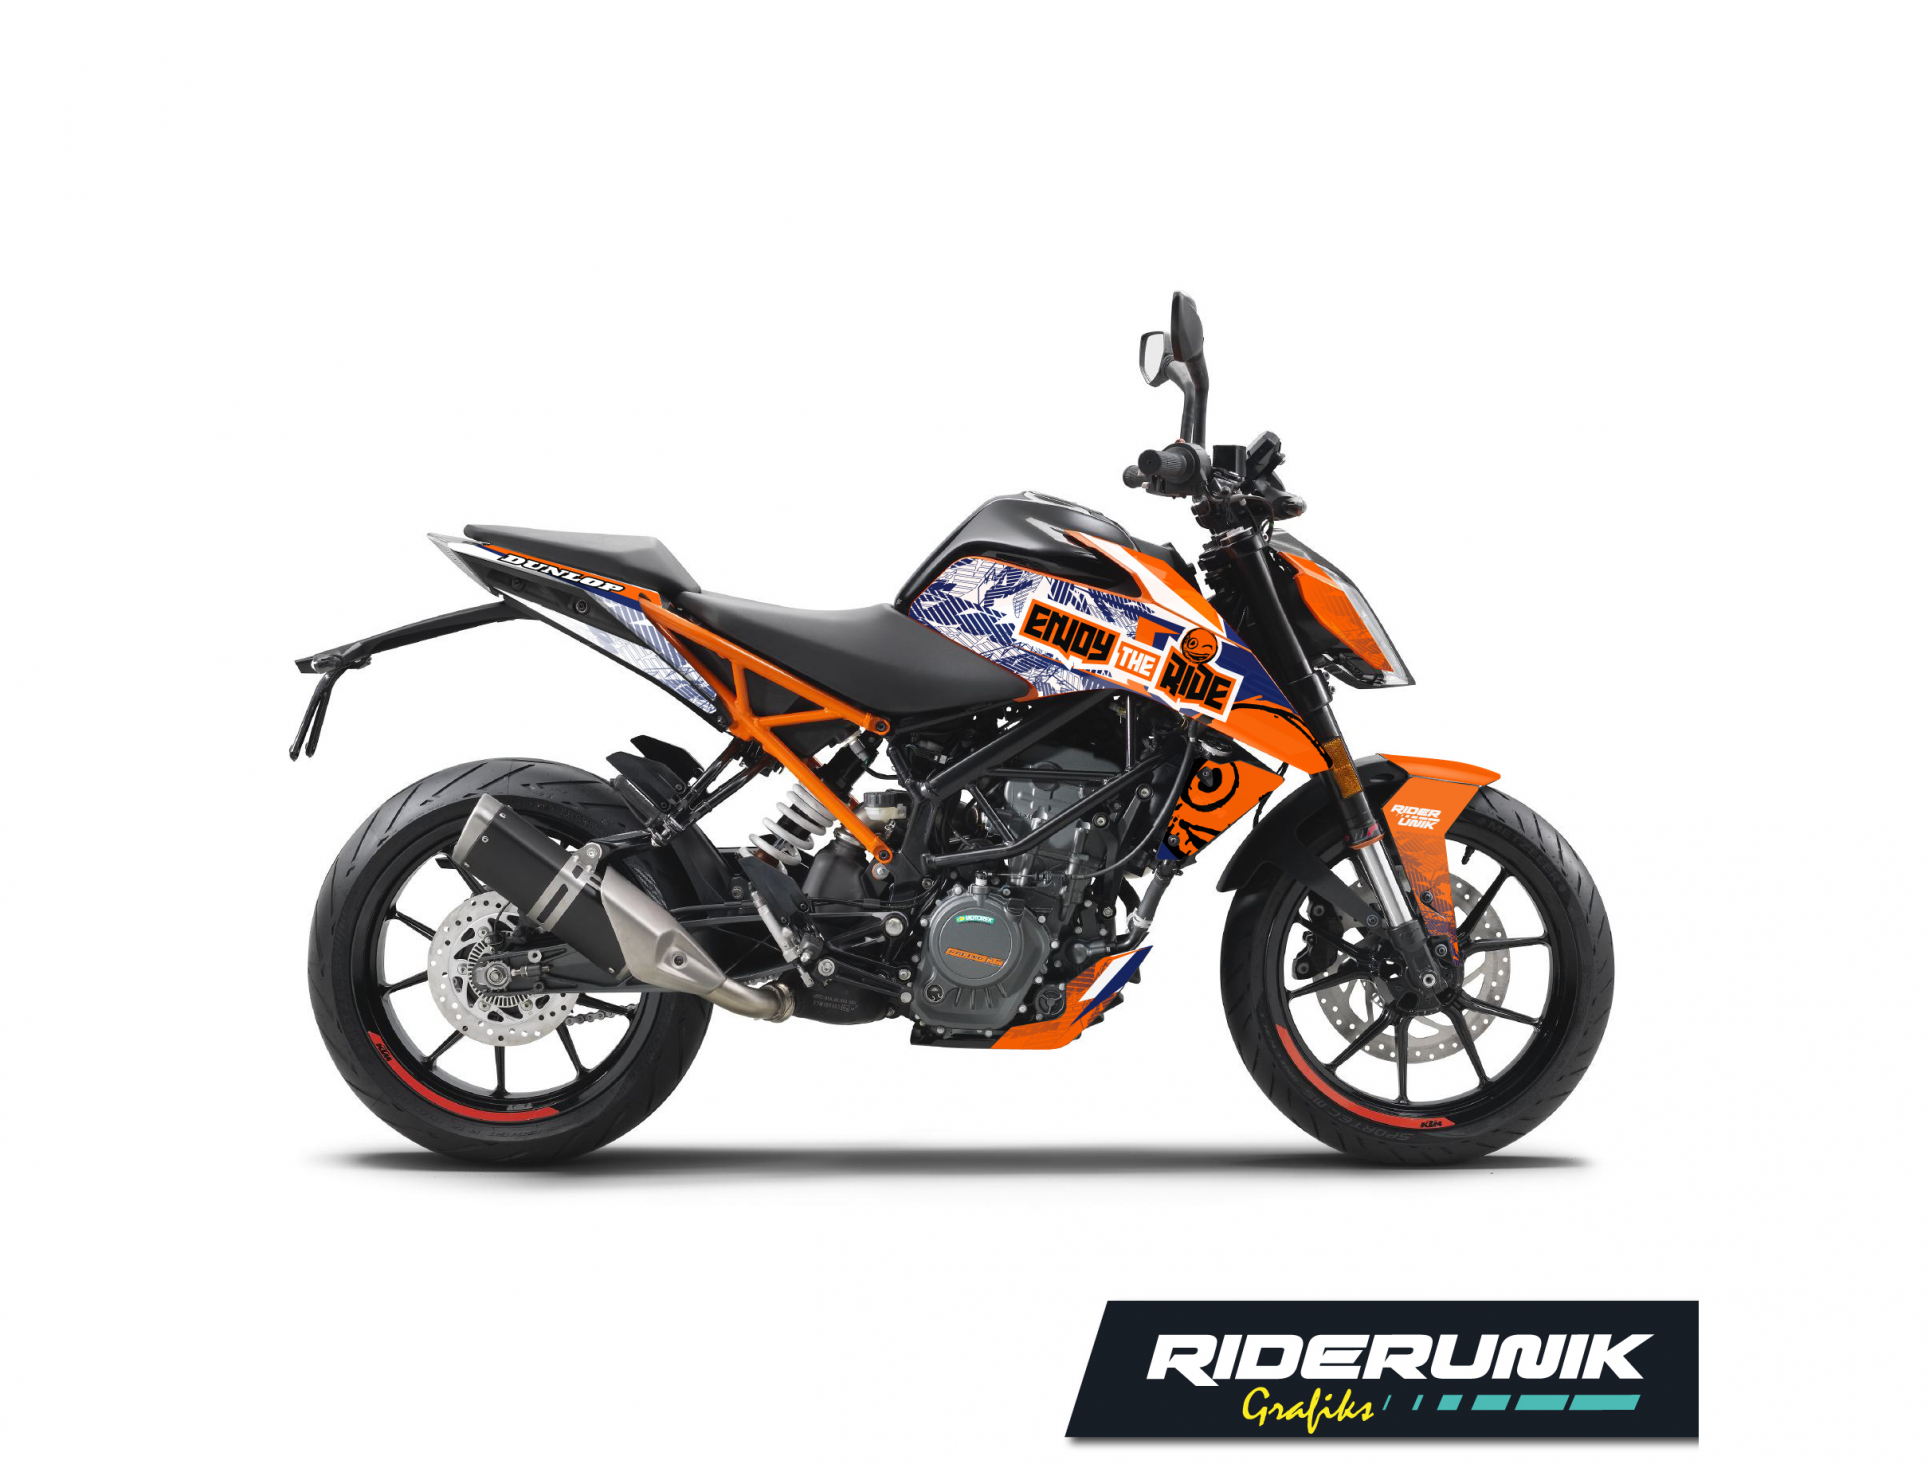 KIT DECO KTM DUKE ENJOY THE RIDE BLANC